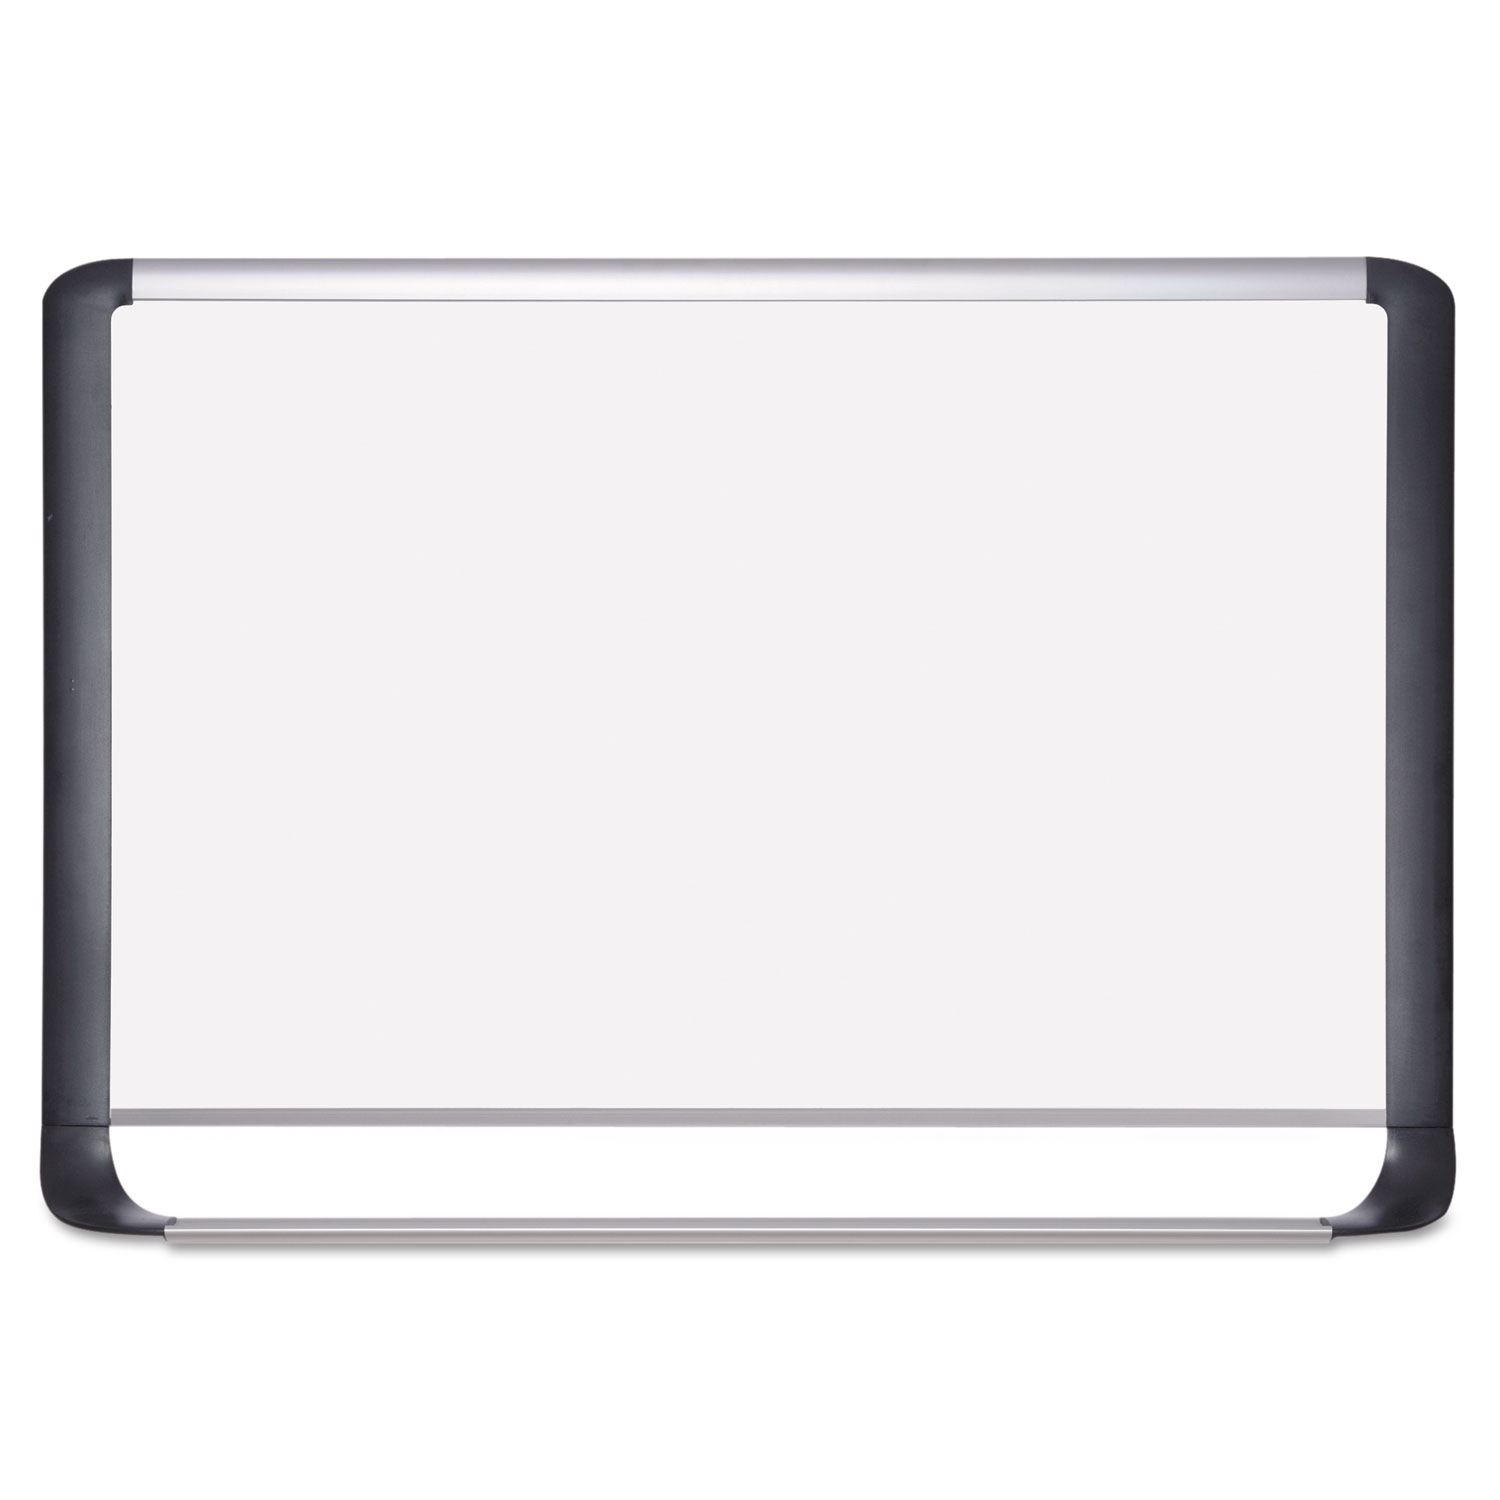 Lacquered steel magnetic dry erase board, 48 x 72, Silver/Black